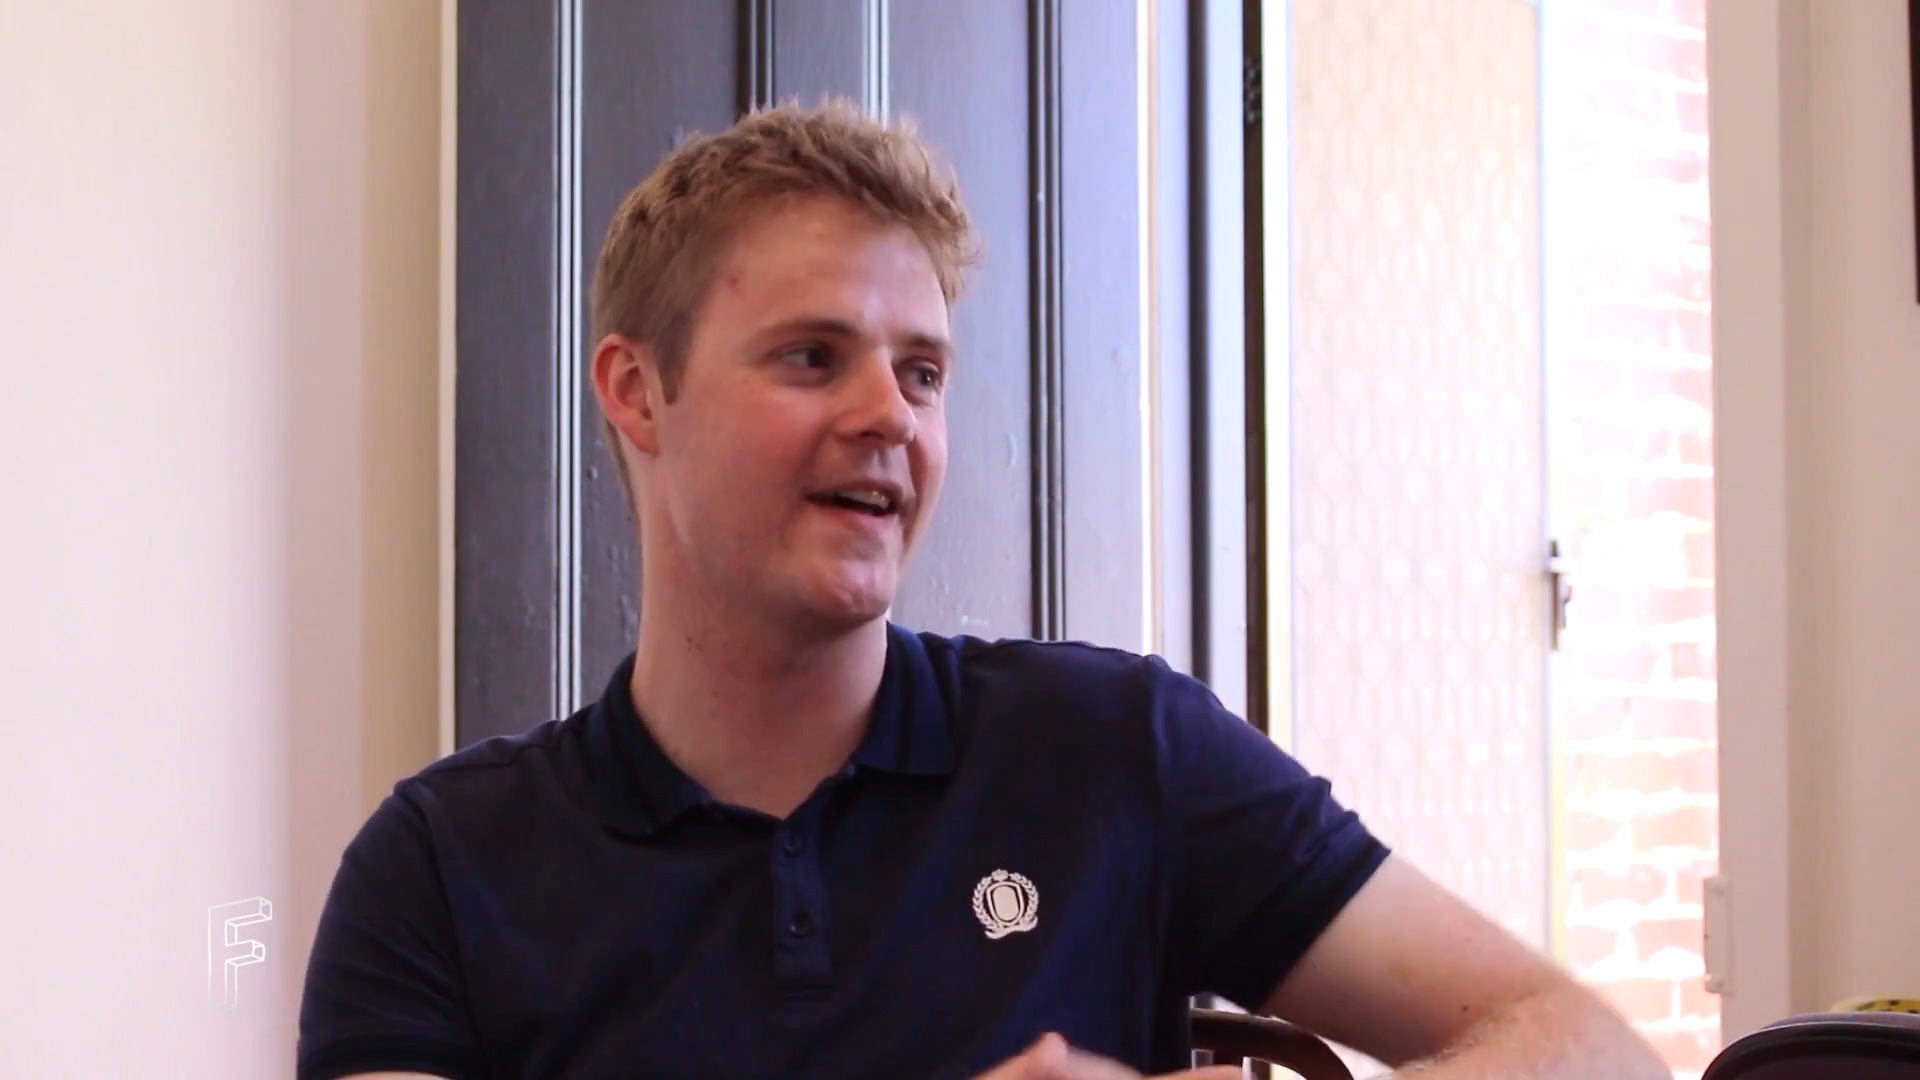 Tom Ballard explains the relevance of 'Tonightly with Tom Ballard' in today's world